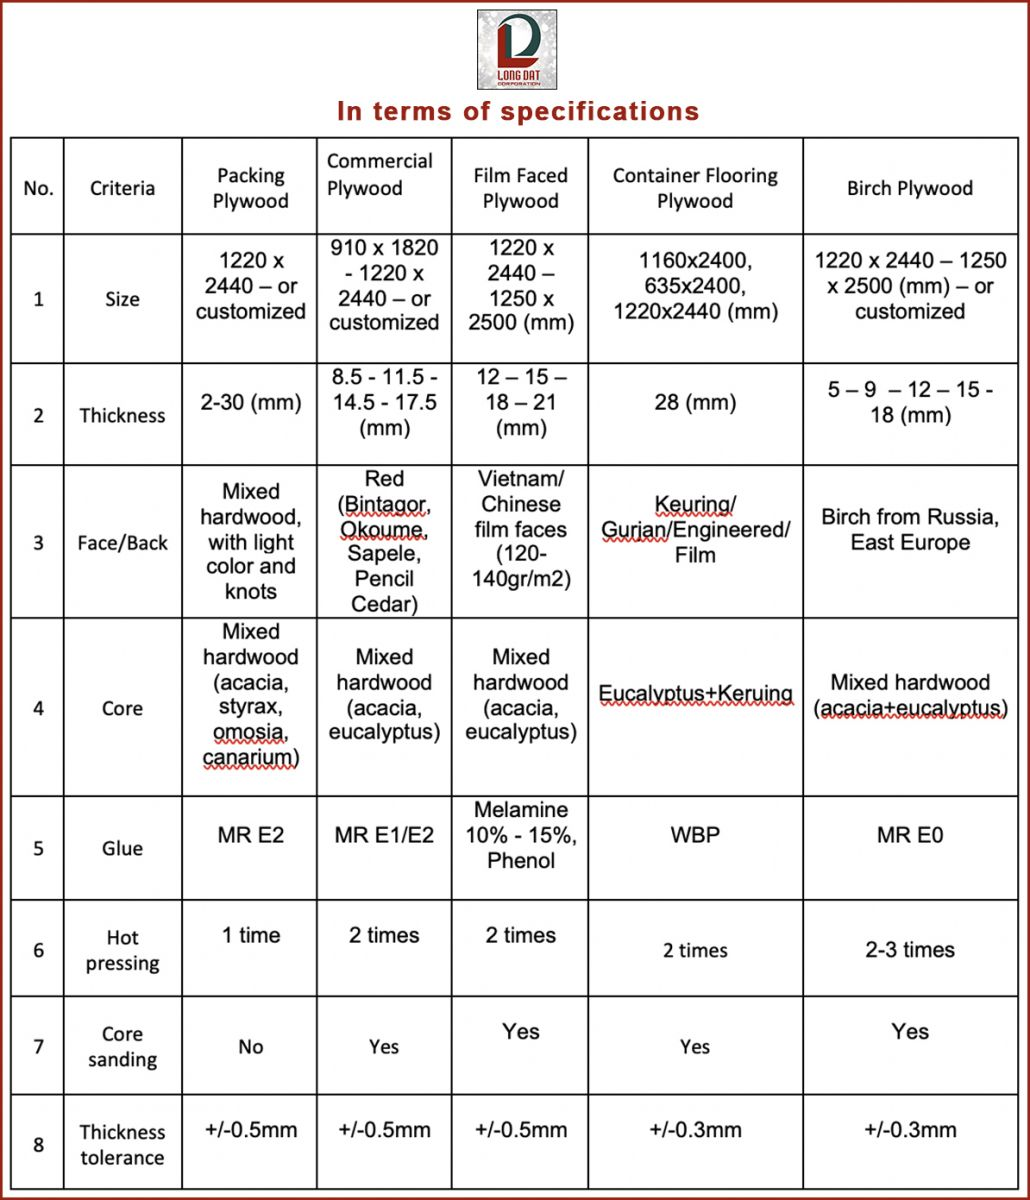 In terms of specifications